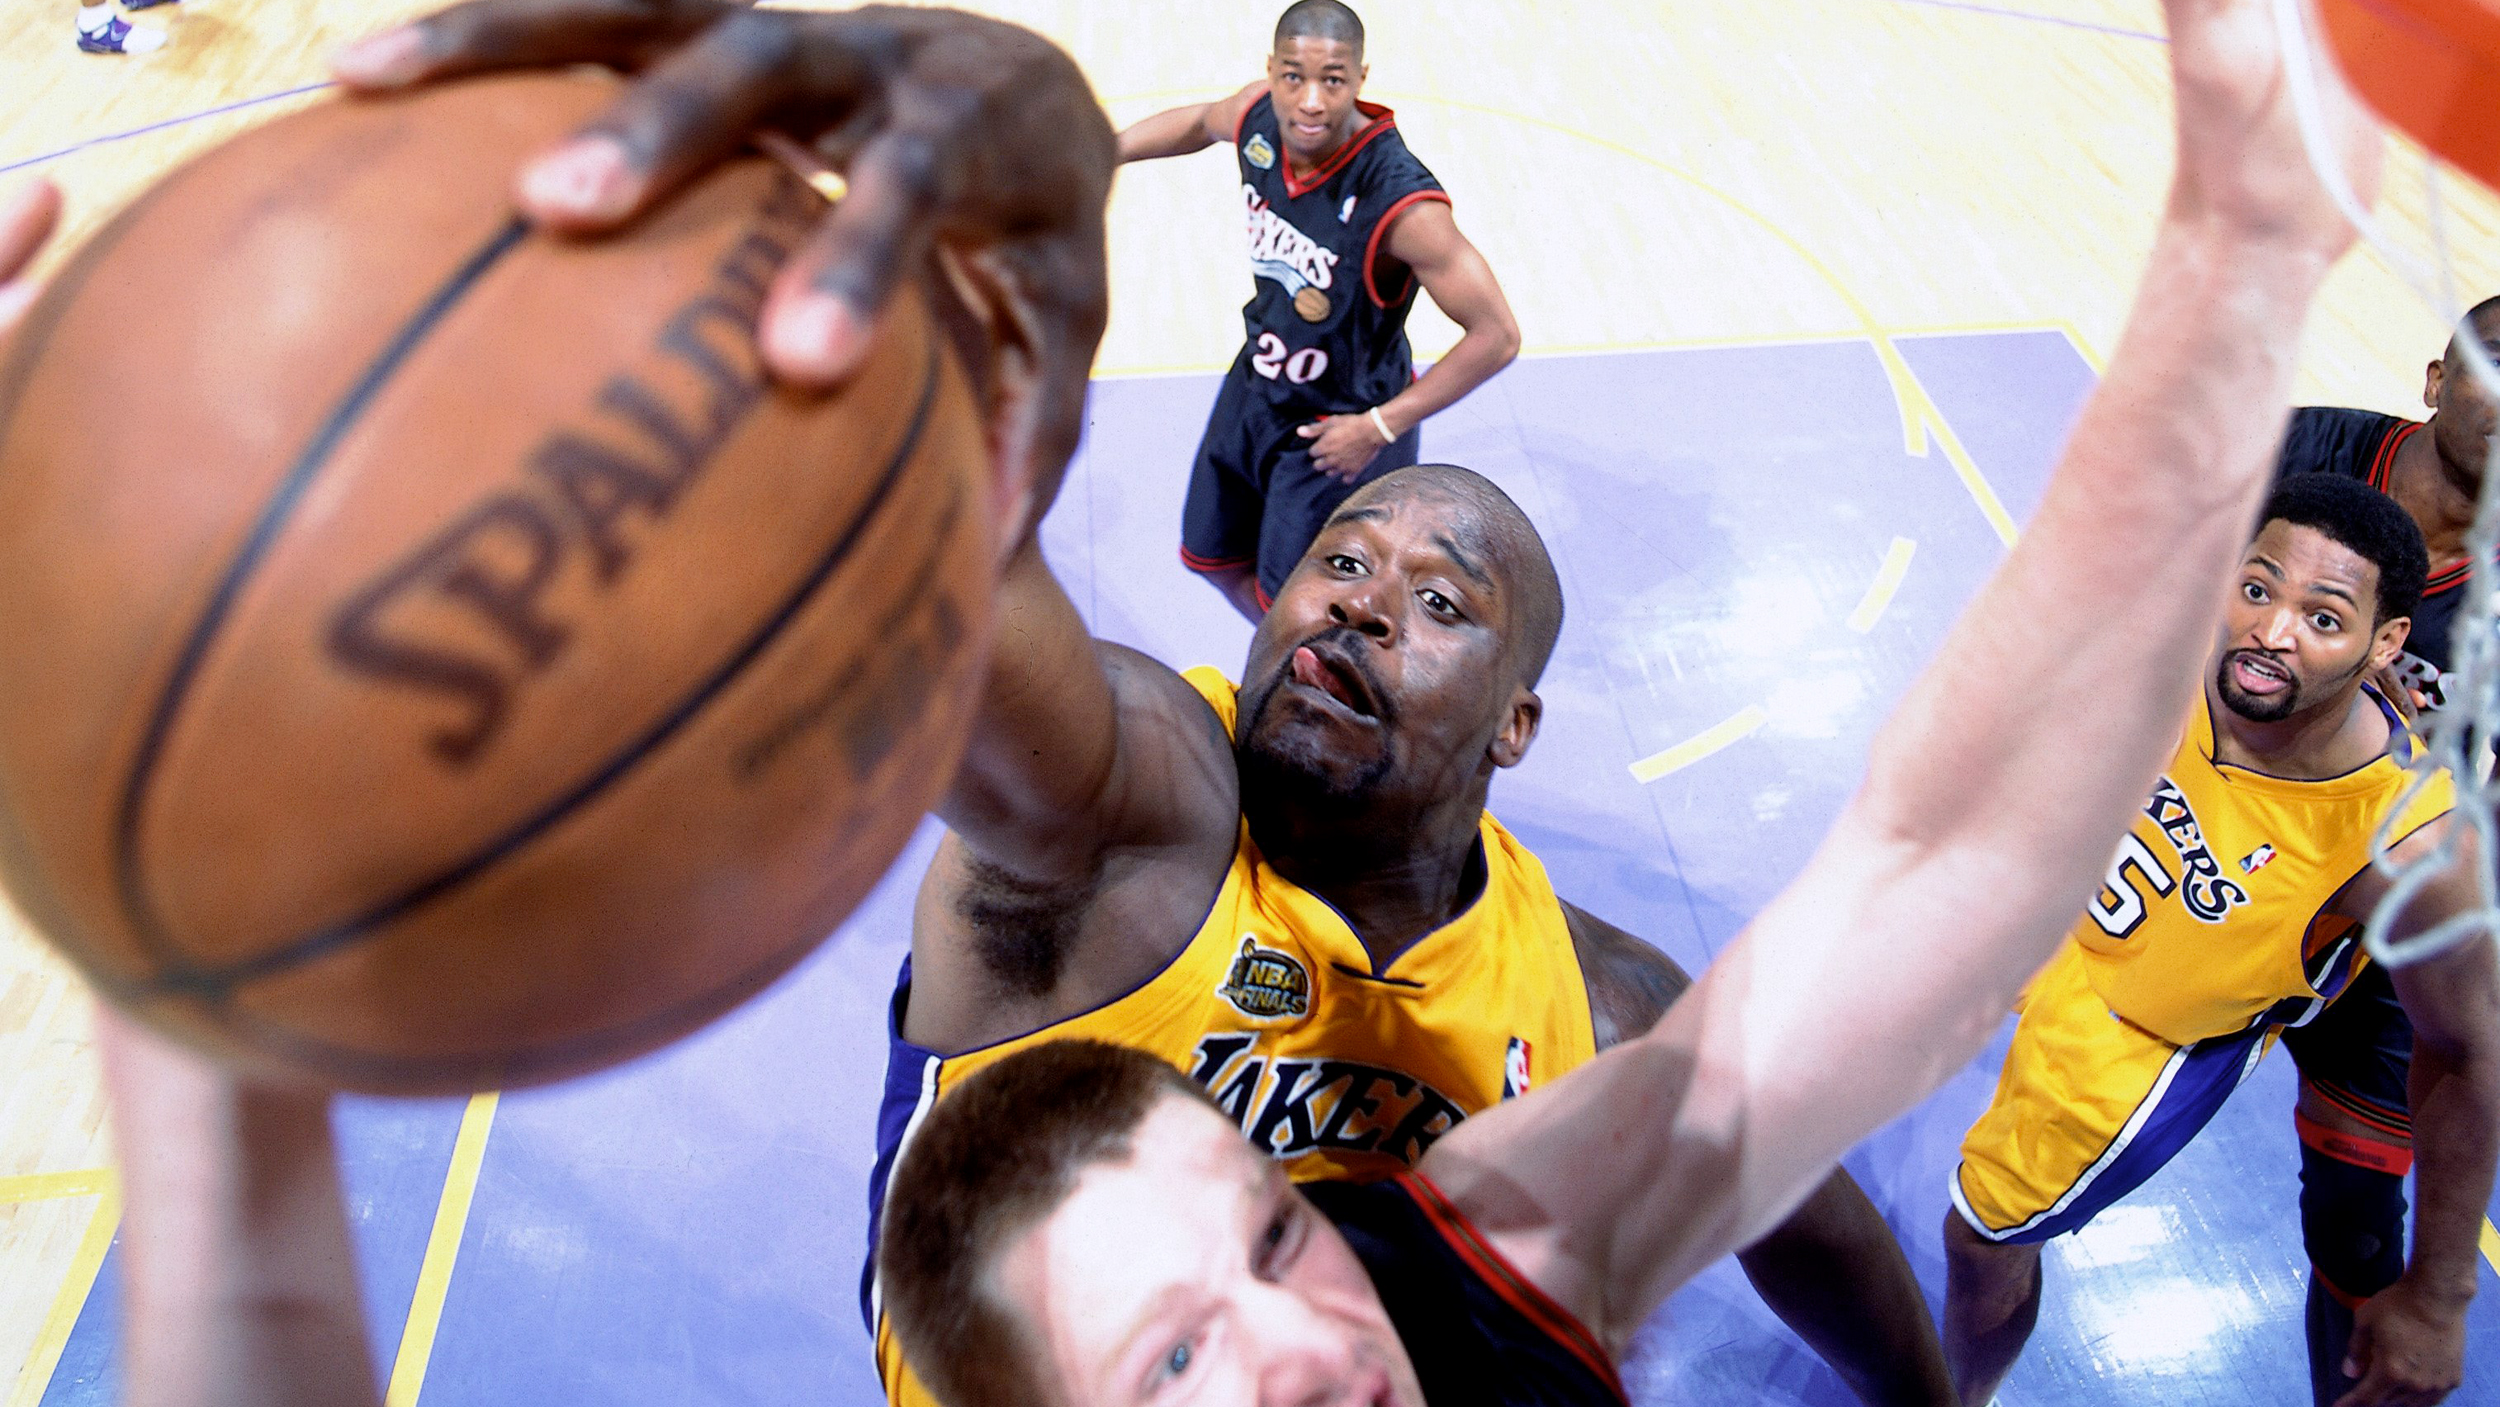 super popular 2ca1d b29d2 On this day in NBA Finals history  Shaquille O Neal drops a near quadruple- double